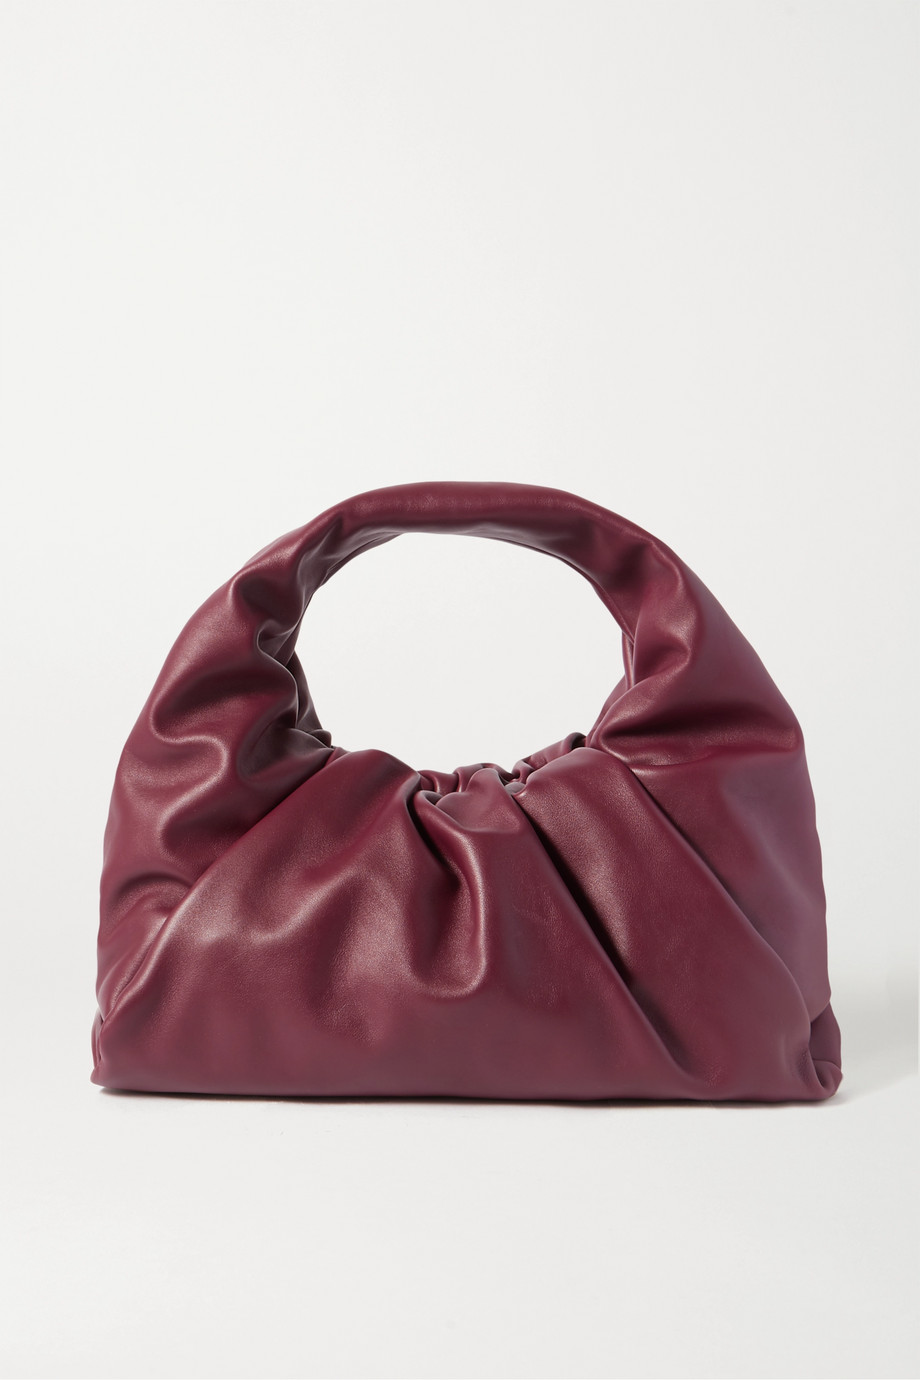 Bottega Veneta The Shoulder Pouch gathered leather bag